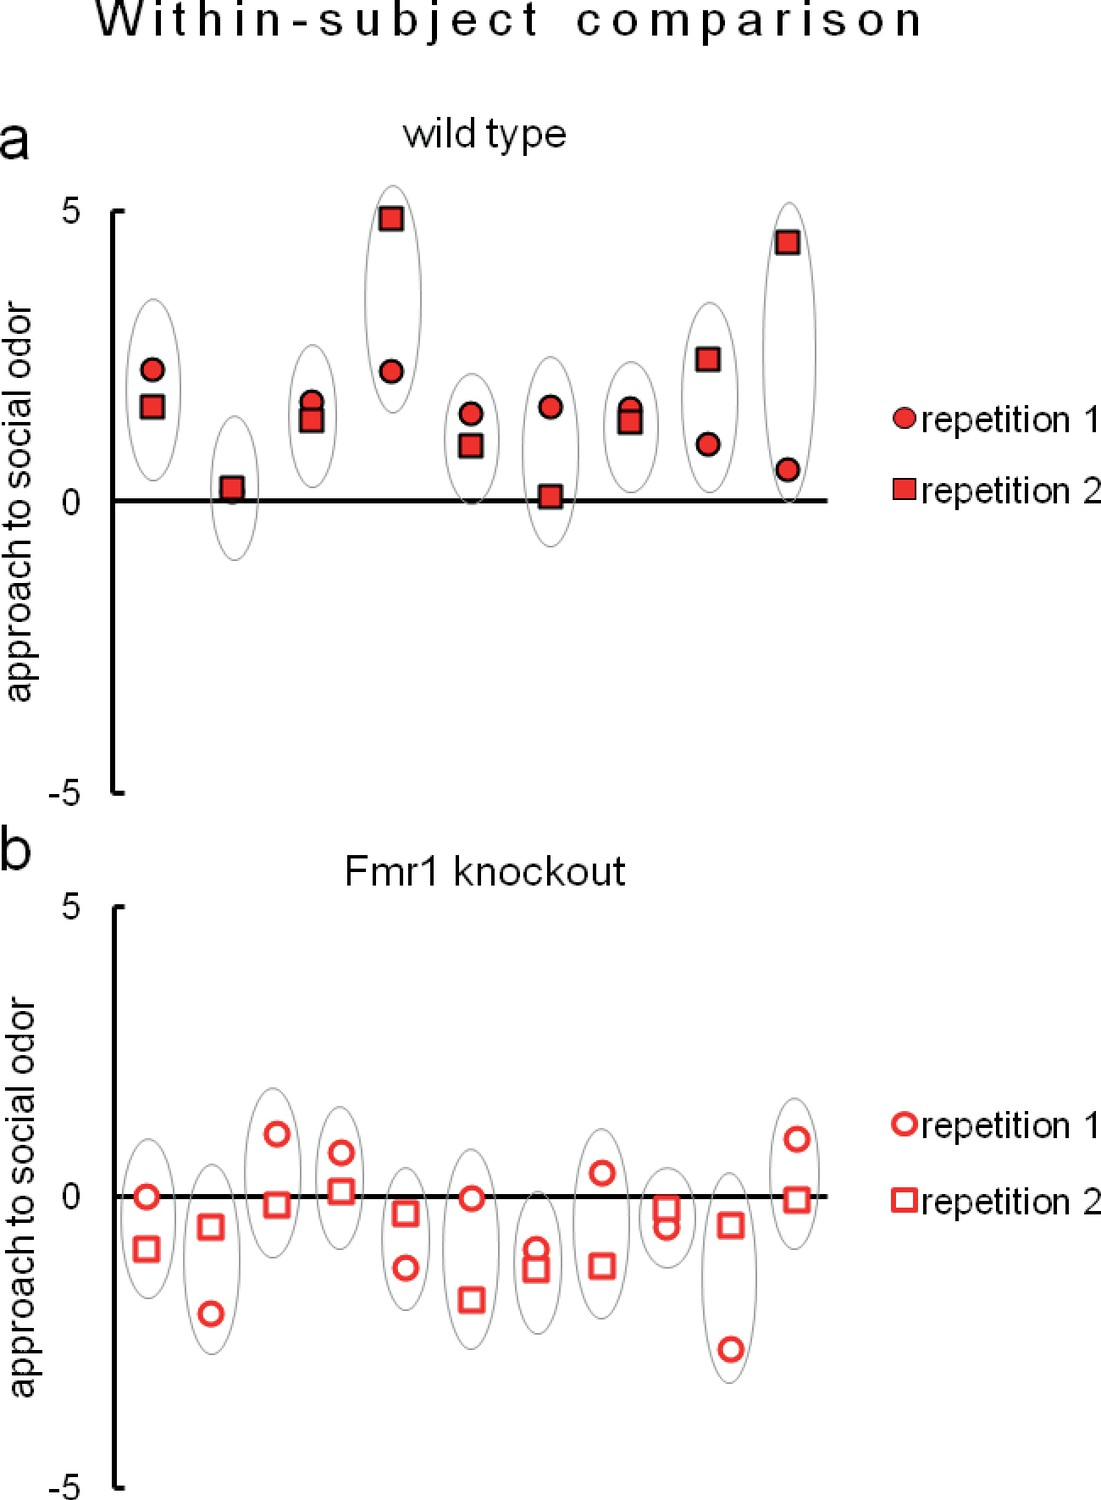 new concept 8bfde 373c8 Eco-HAB allows remarkably reproducible assessment of approach to social  odor in both (a) wild-type mice (n   9) and (b) Fmr1 knockouts (n   11).